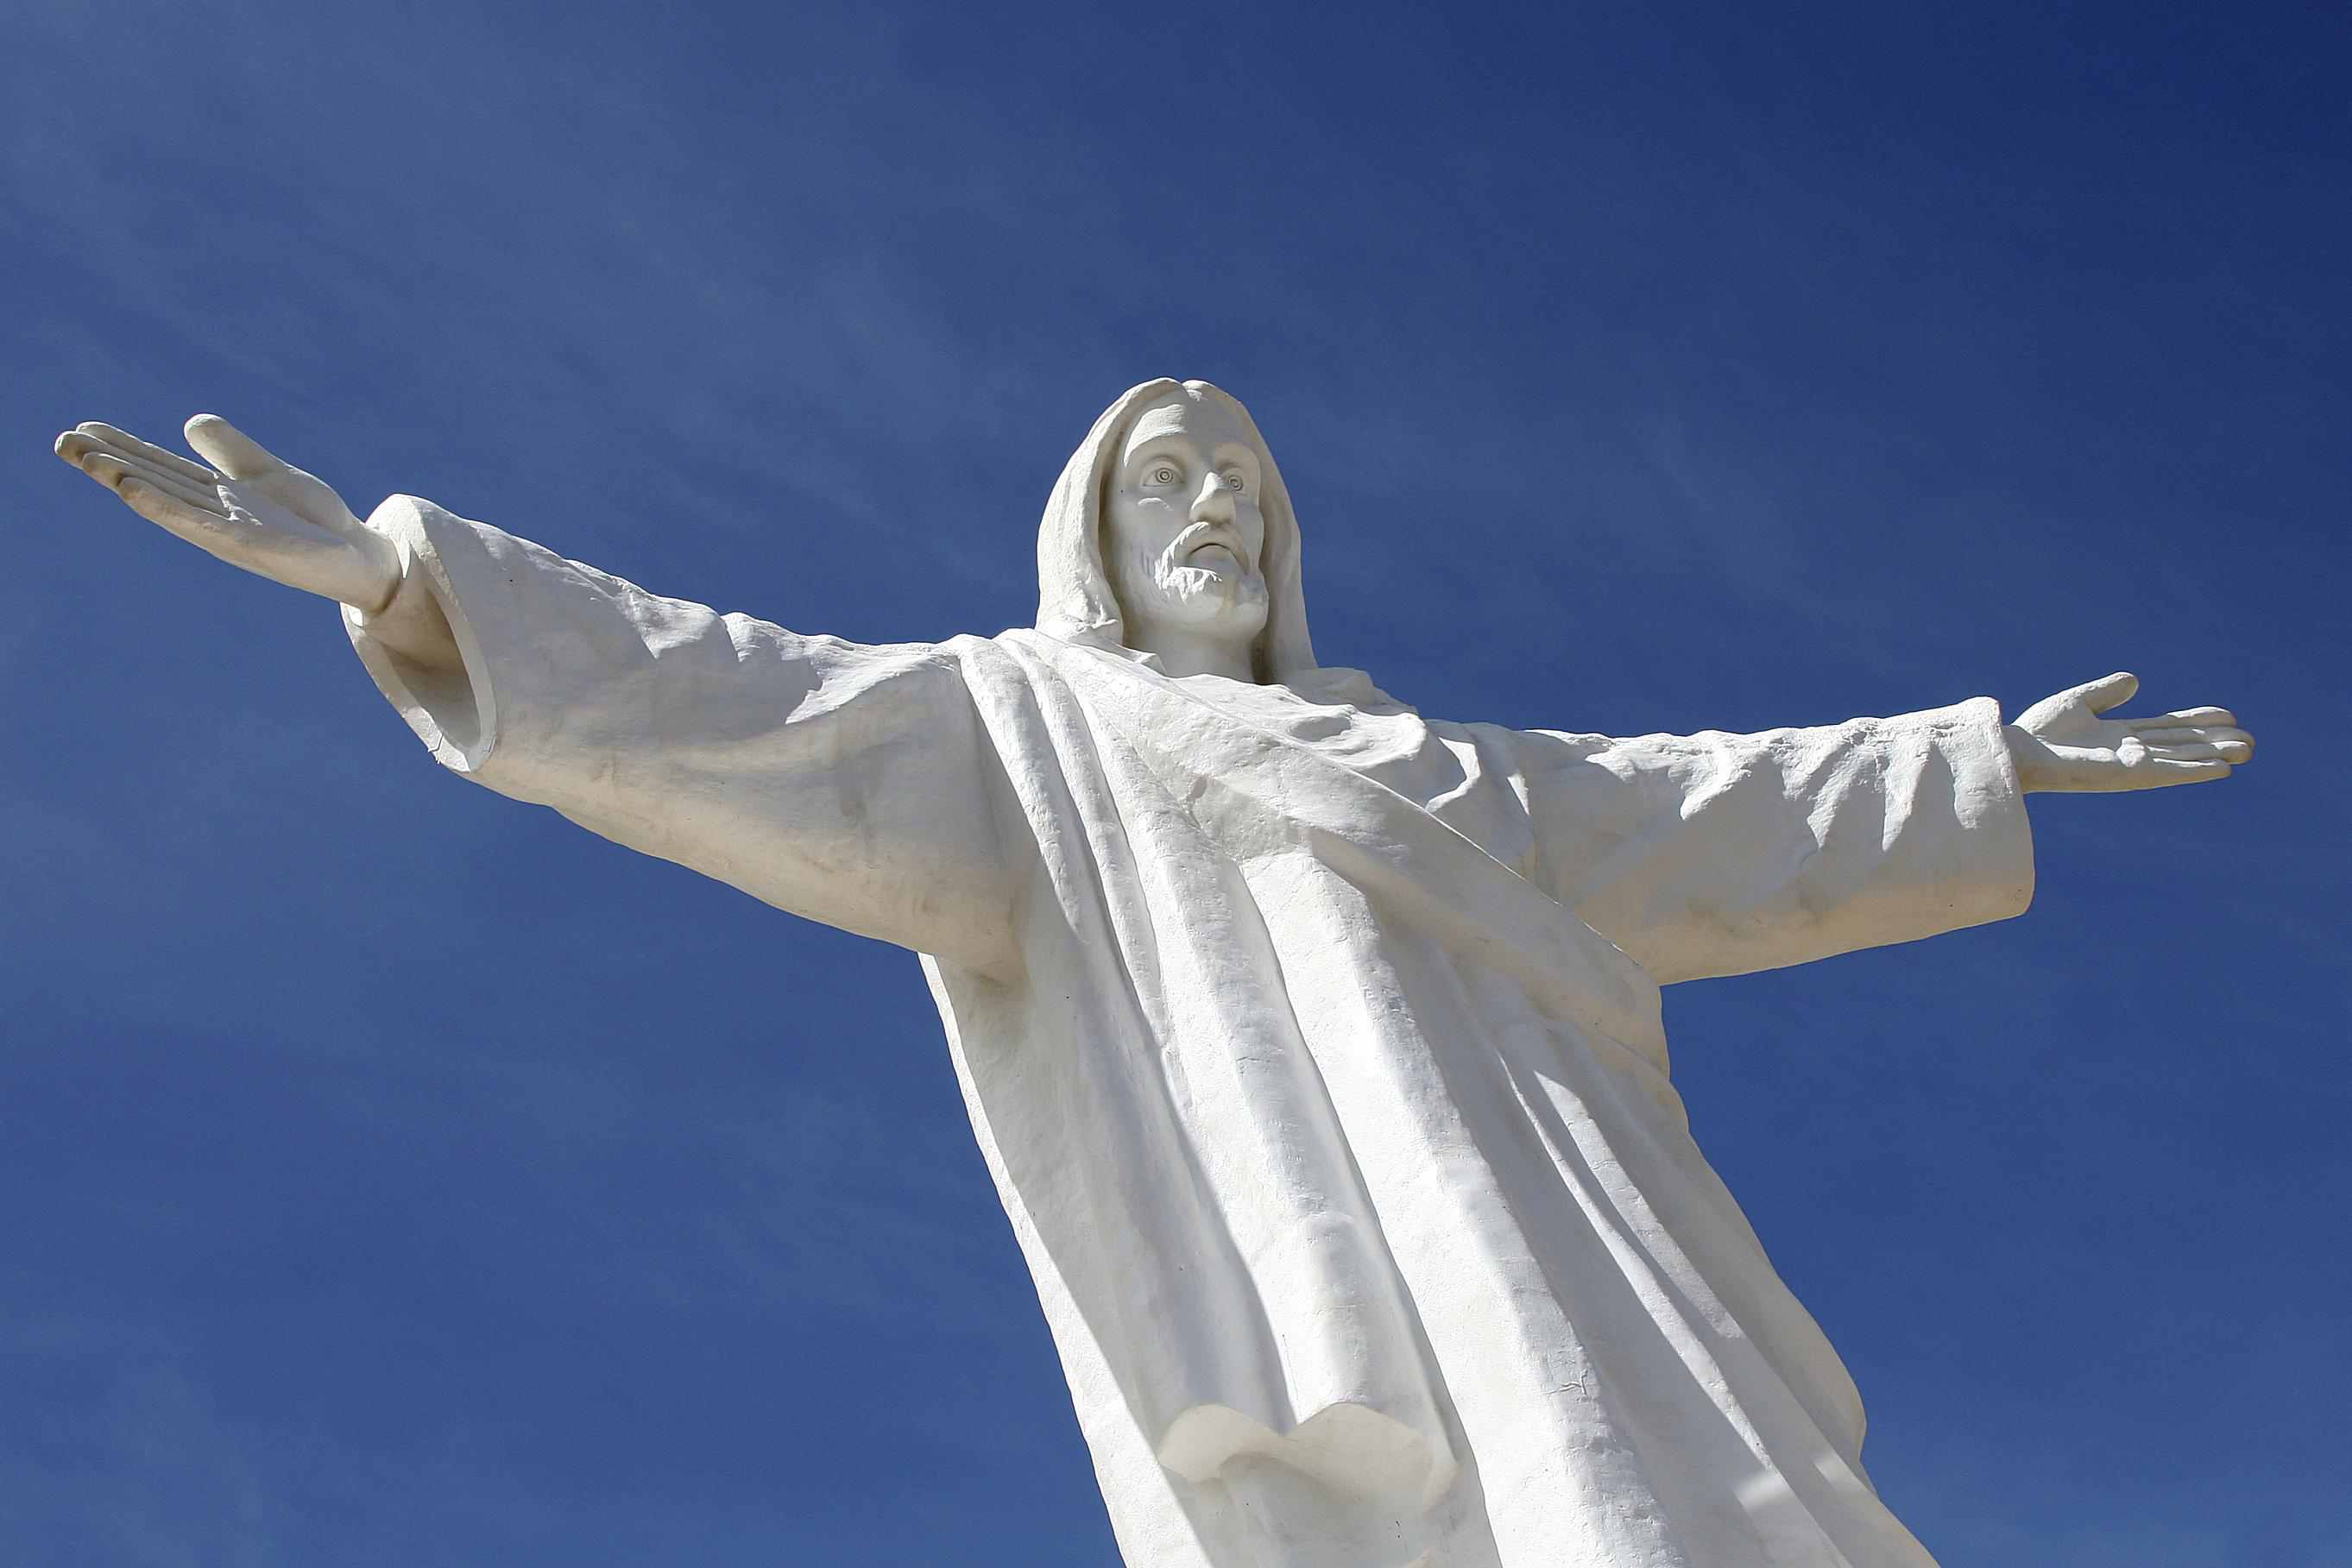 A statue of Christ with his arms out wide